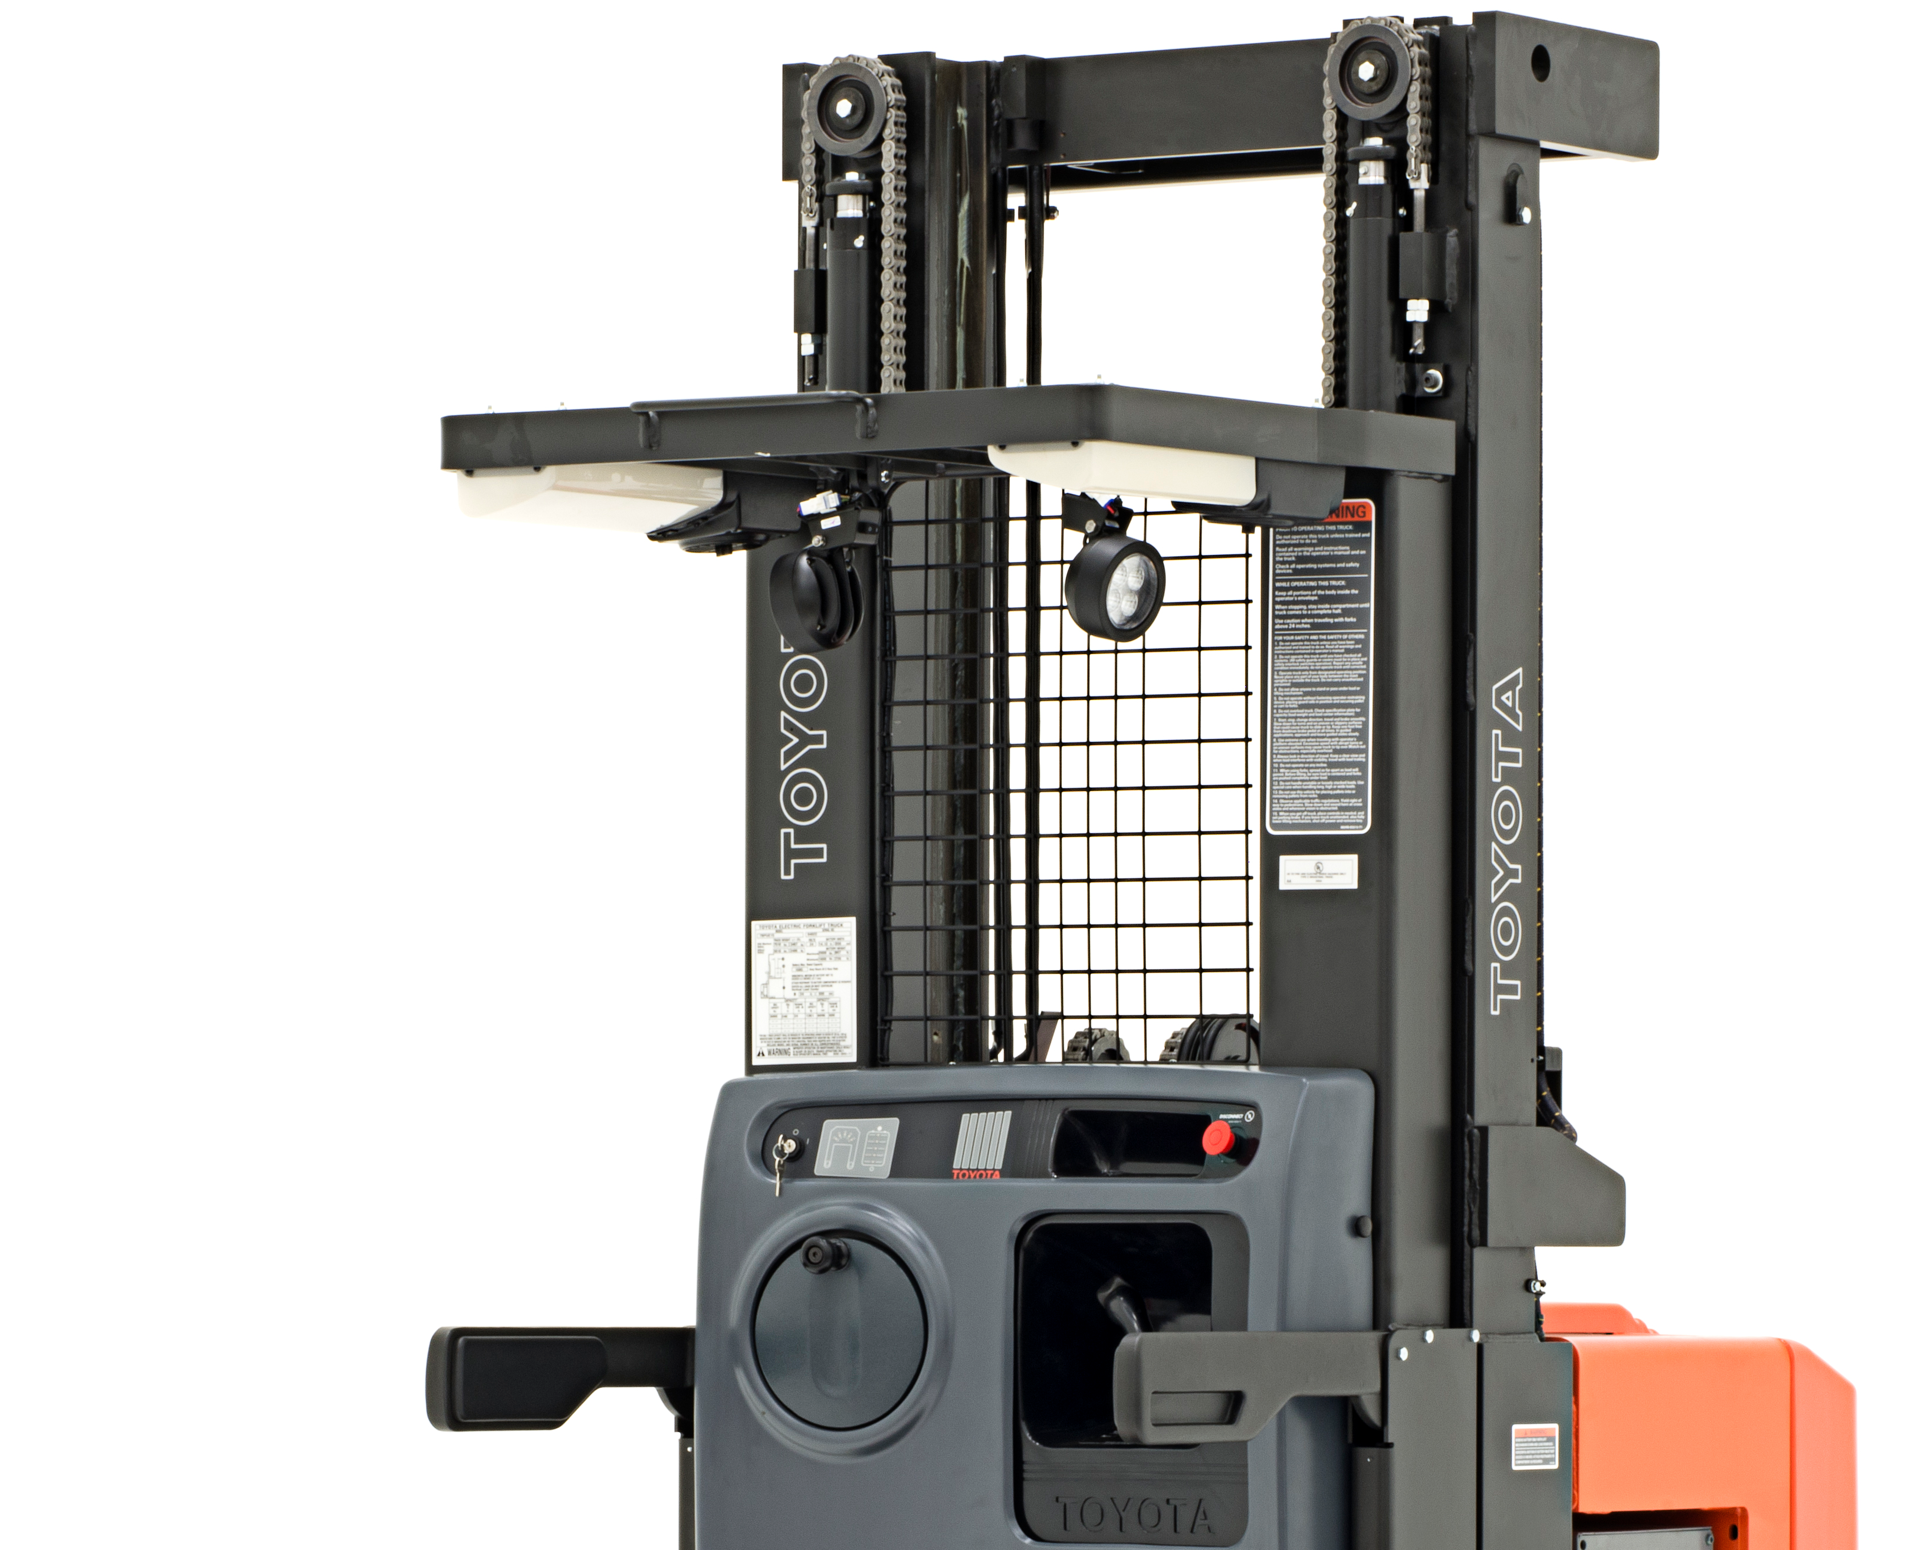 Close-up image of Toyota's 7-Series Order Picker forklift